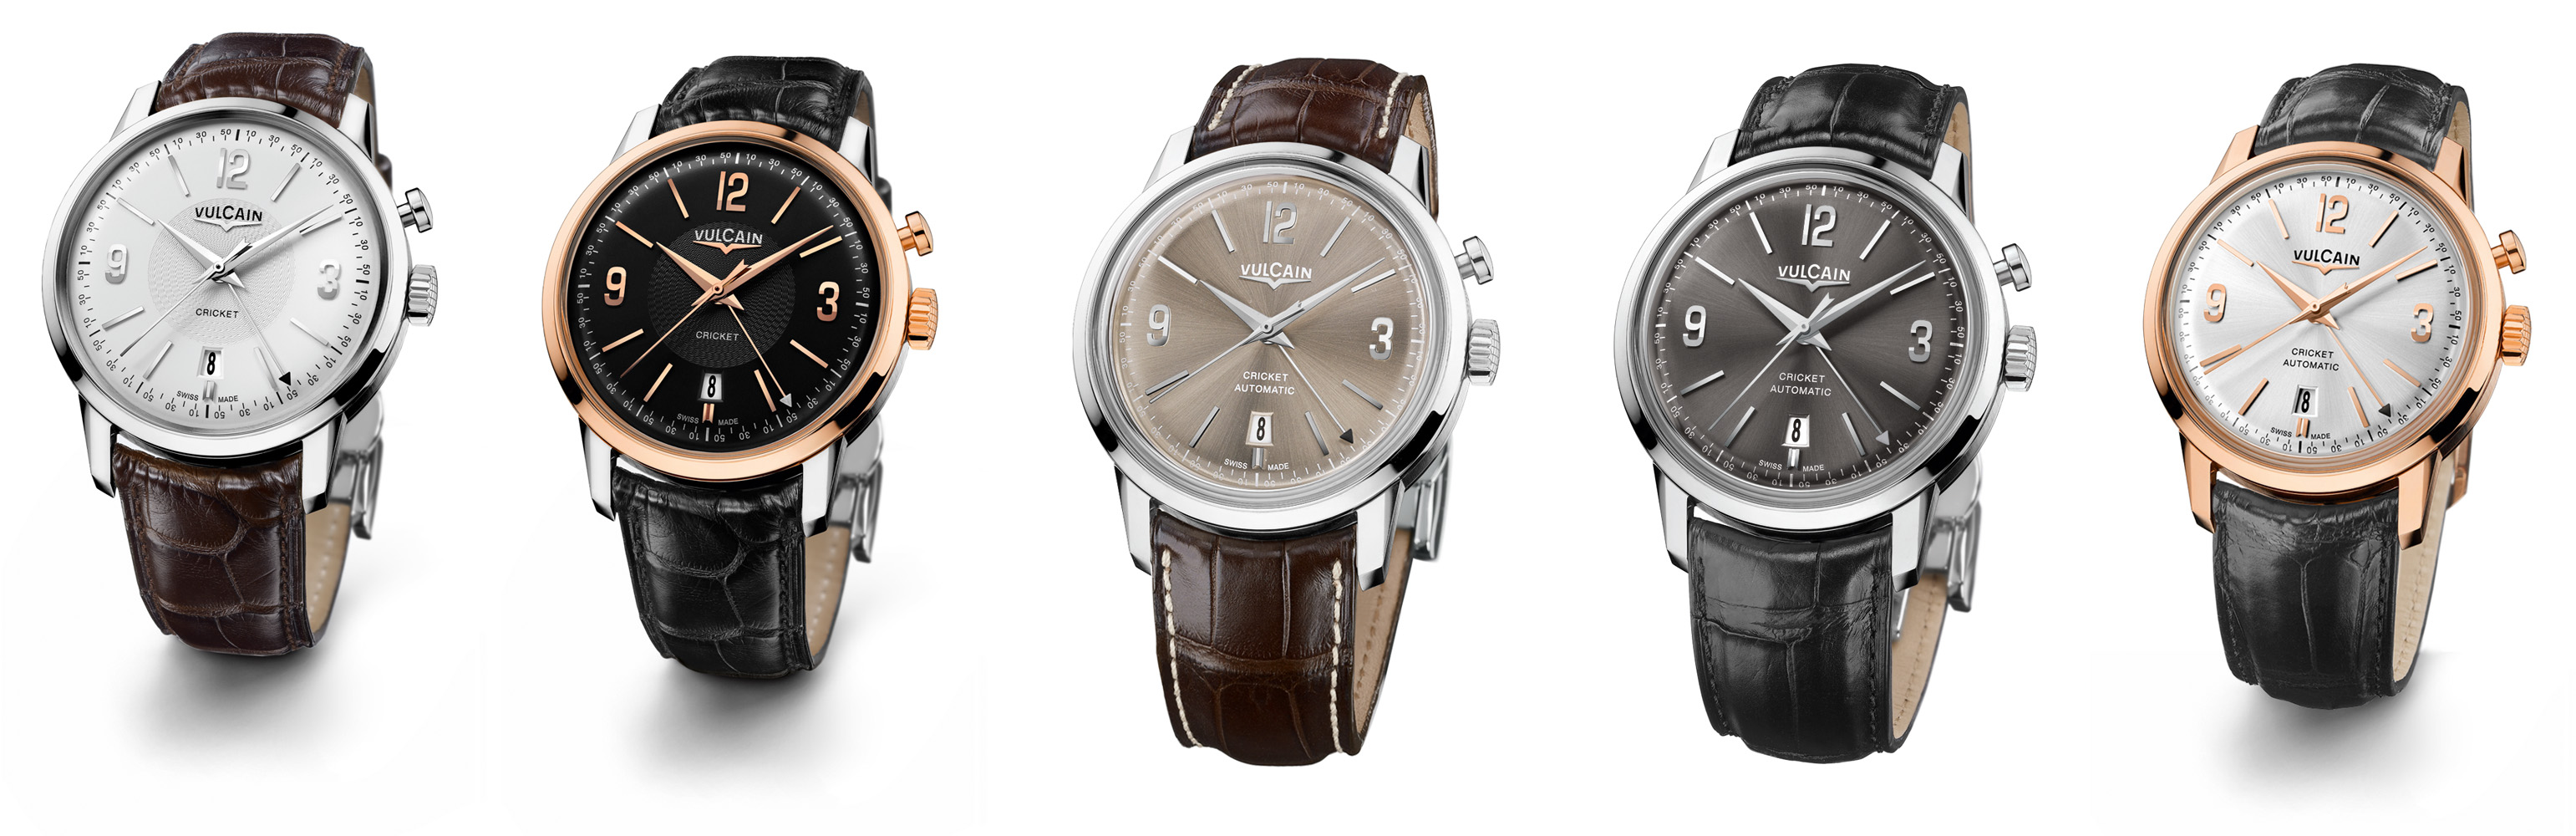 Collection de montres Vulcain 50s Presidents Watch